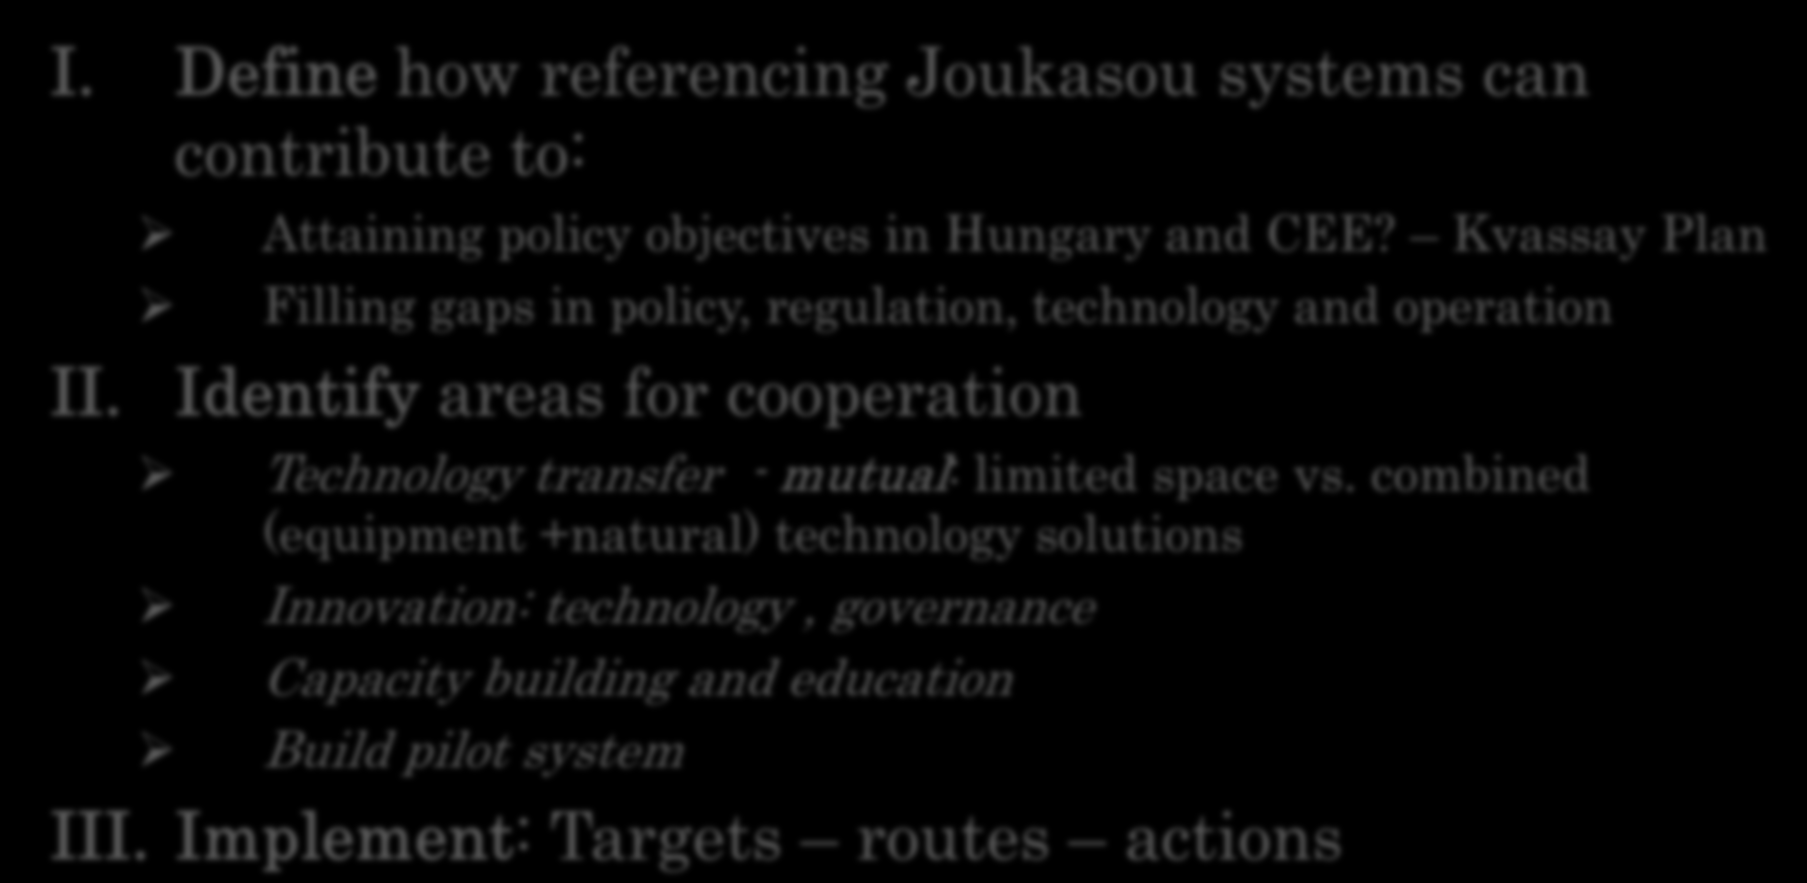 Workshop follow-up I. Define how referencing Joukasou systems can contribute to: II. Attaining policy objectives in Hungary and CEE?